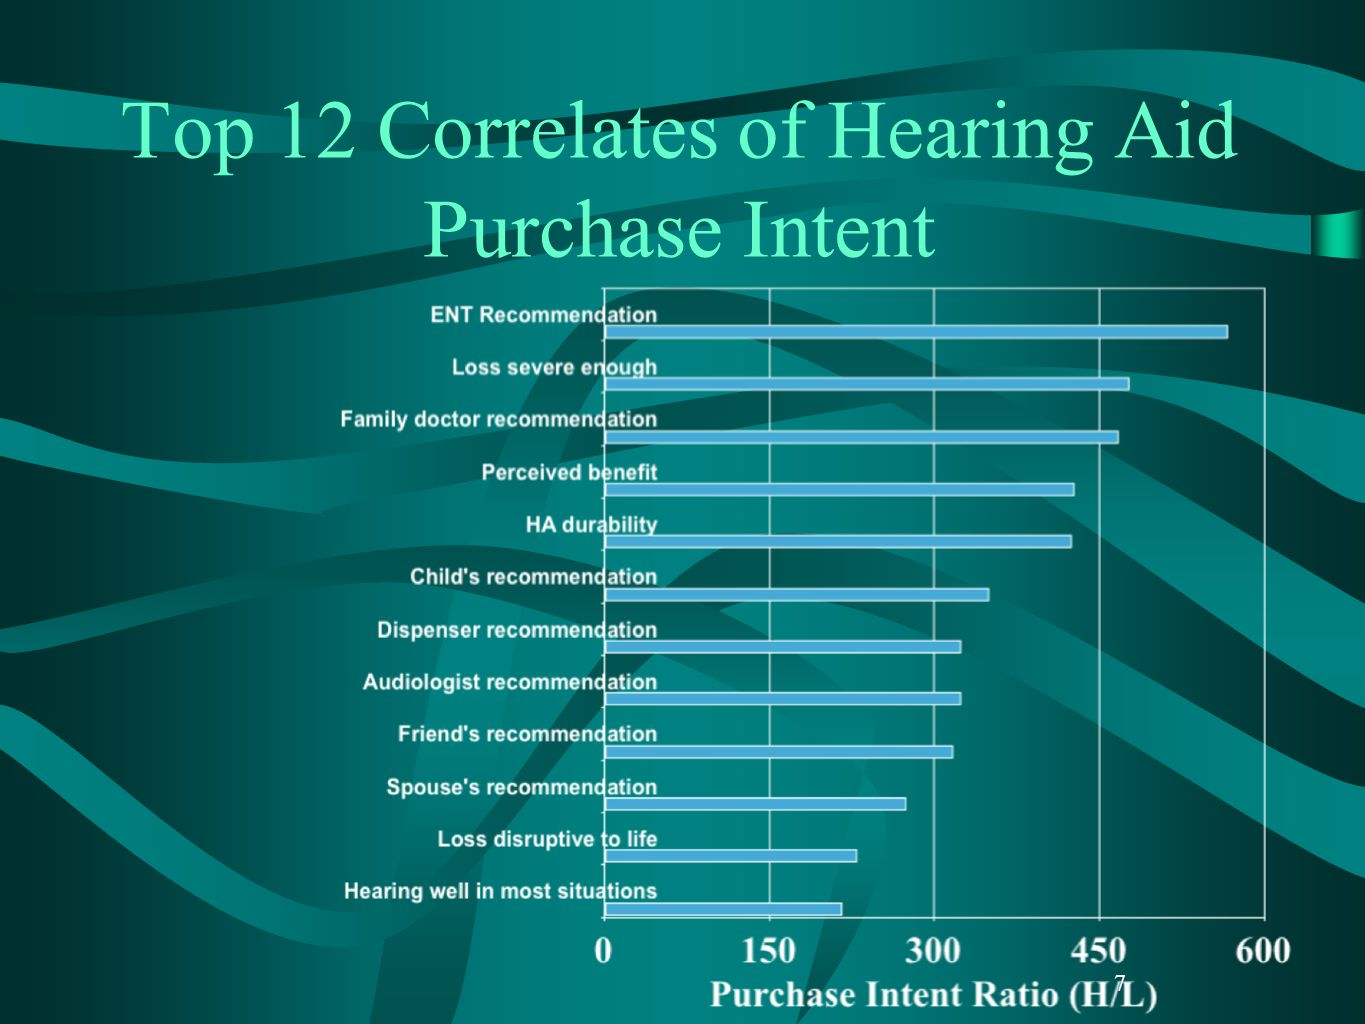 7 Top 12 Correlates of Hearing Aid Purchase Intent